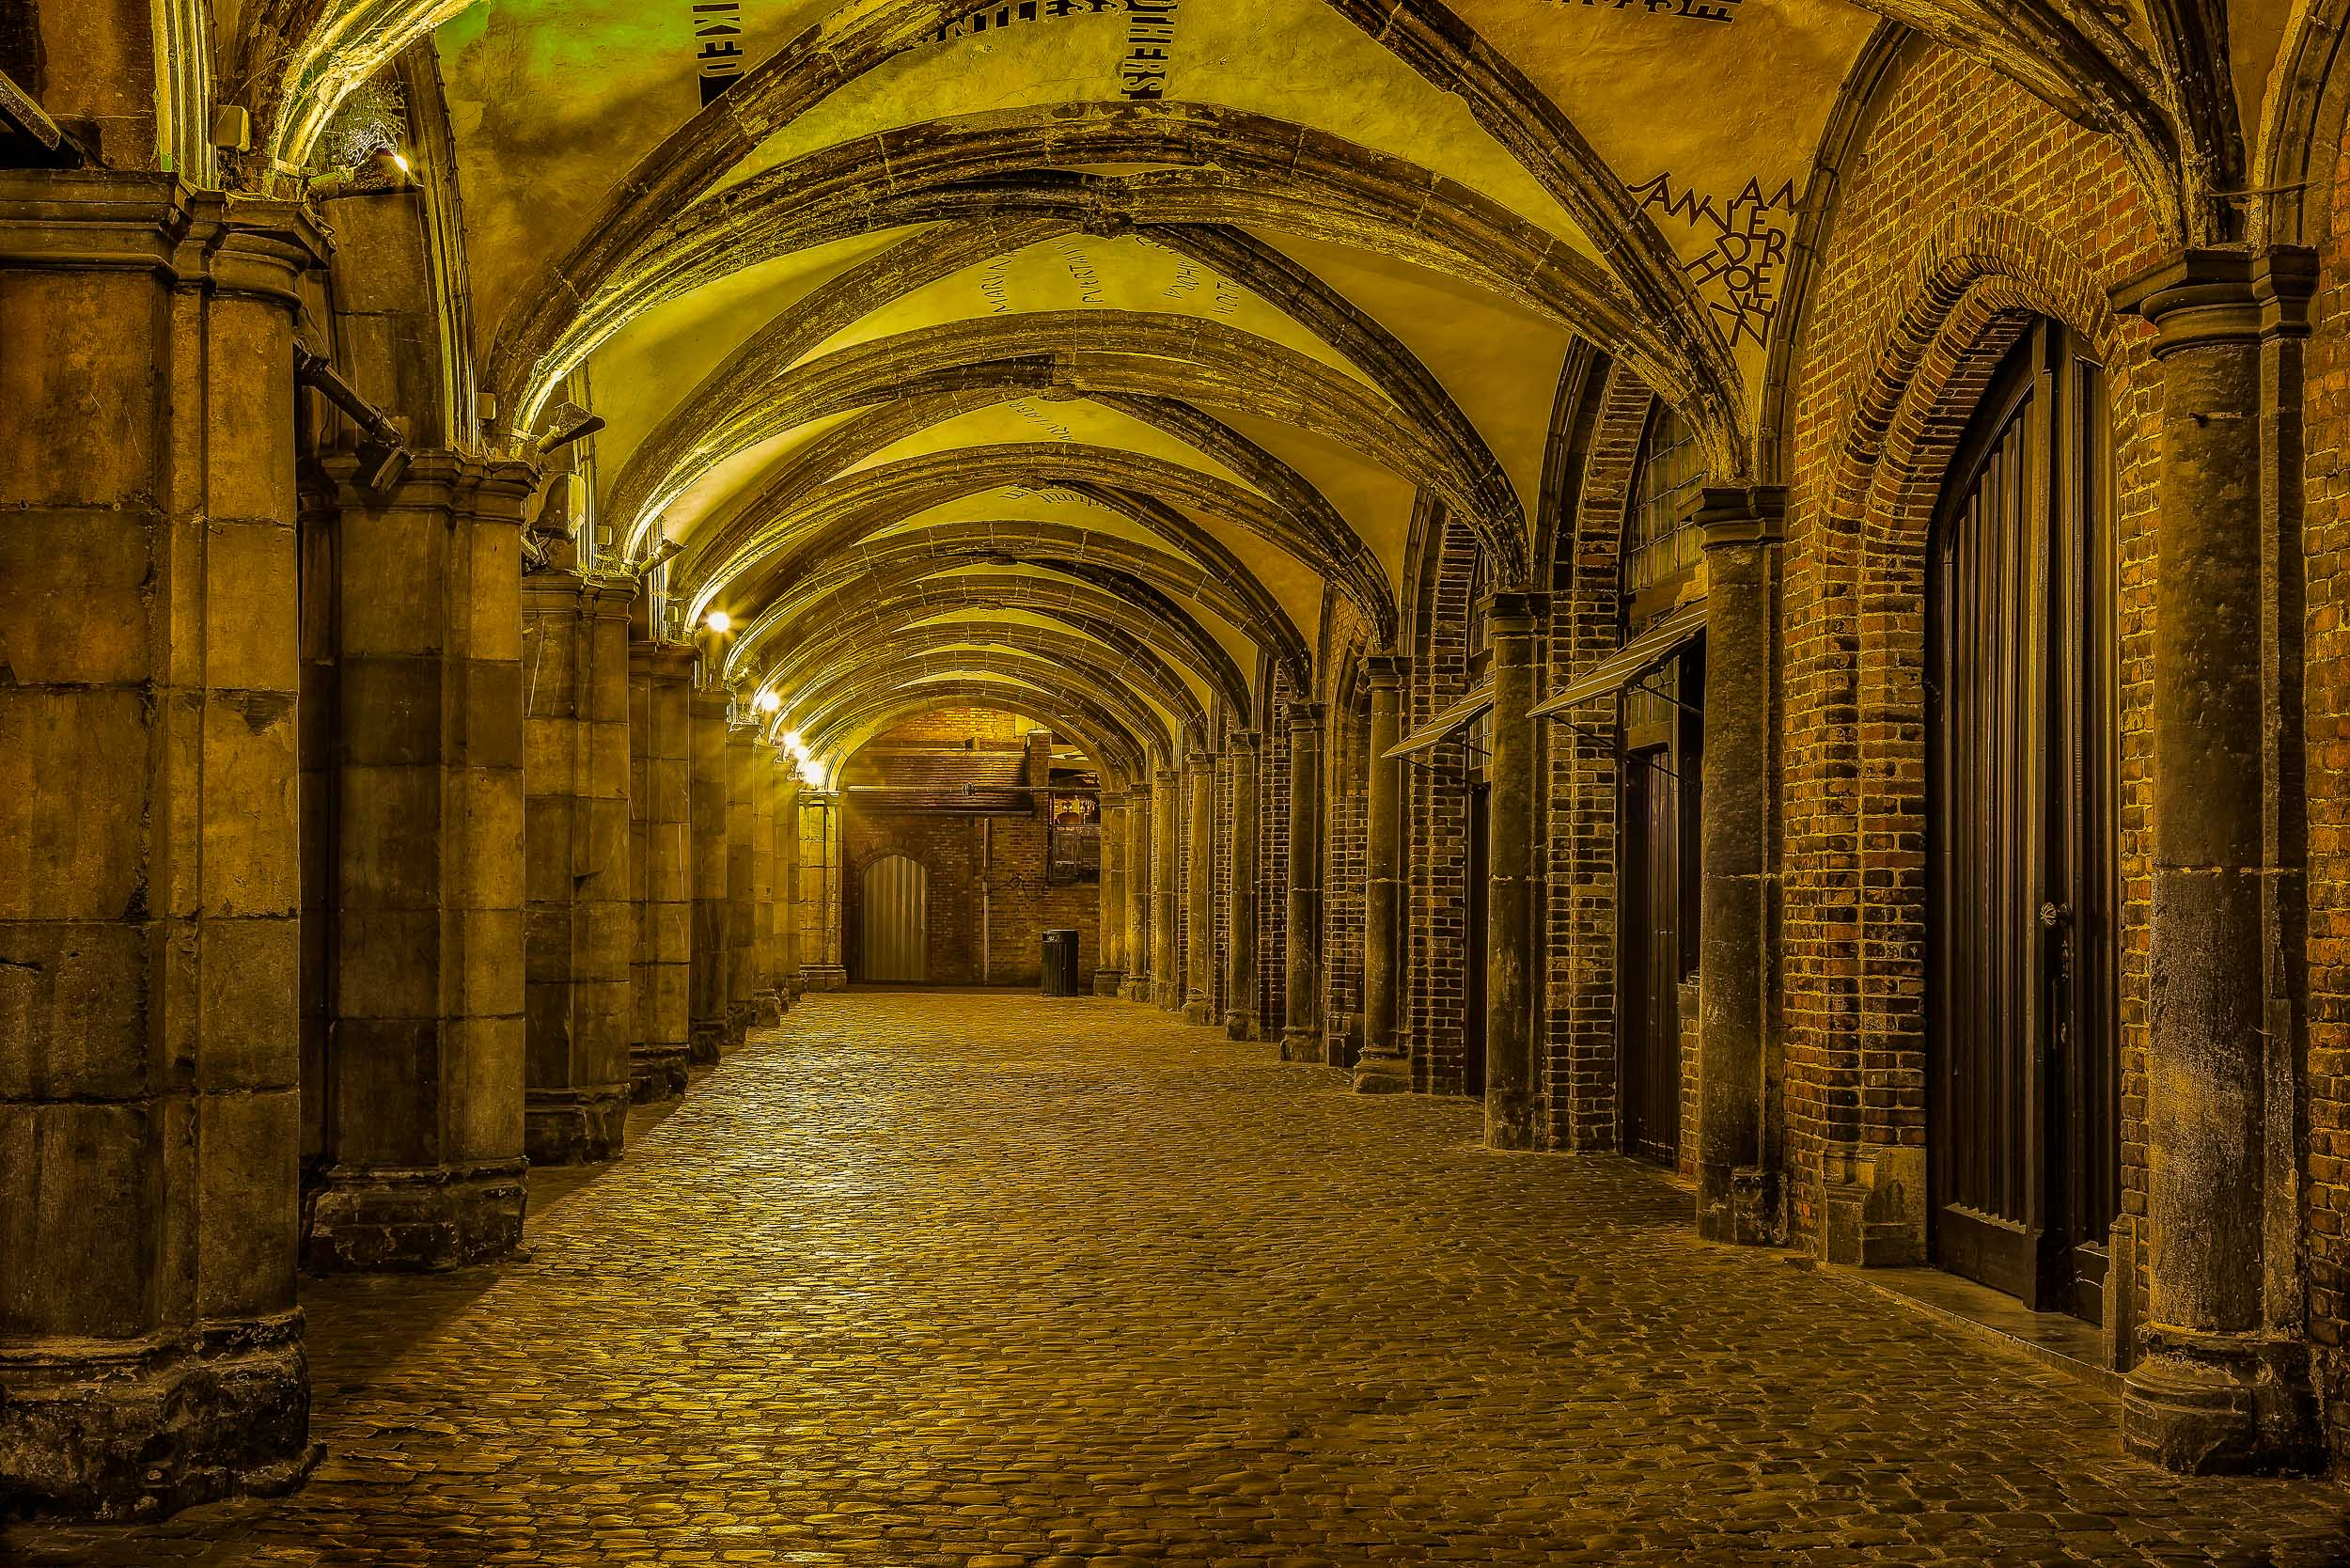 Artificial light illuminates this brooding walkway at night in Bruges, Belgium .